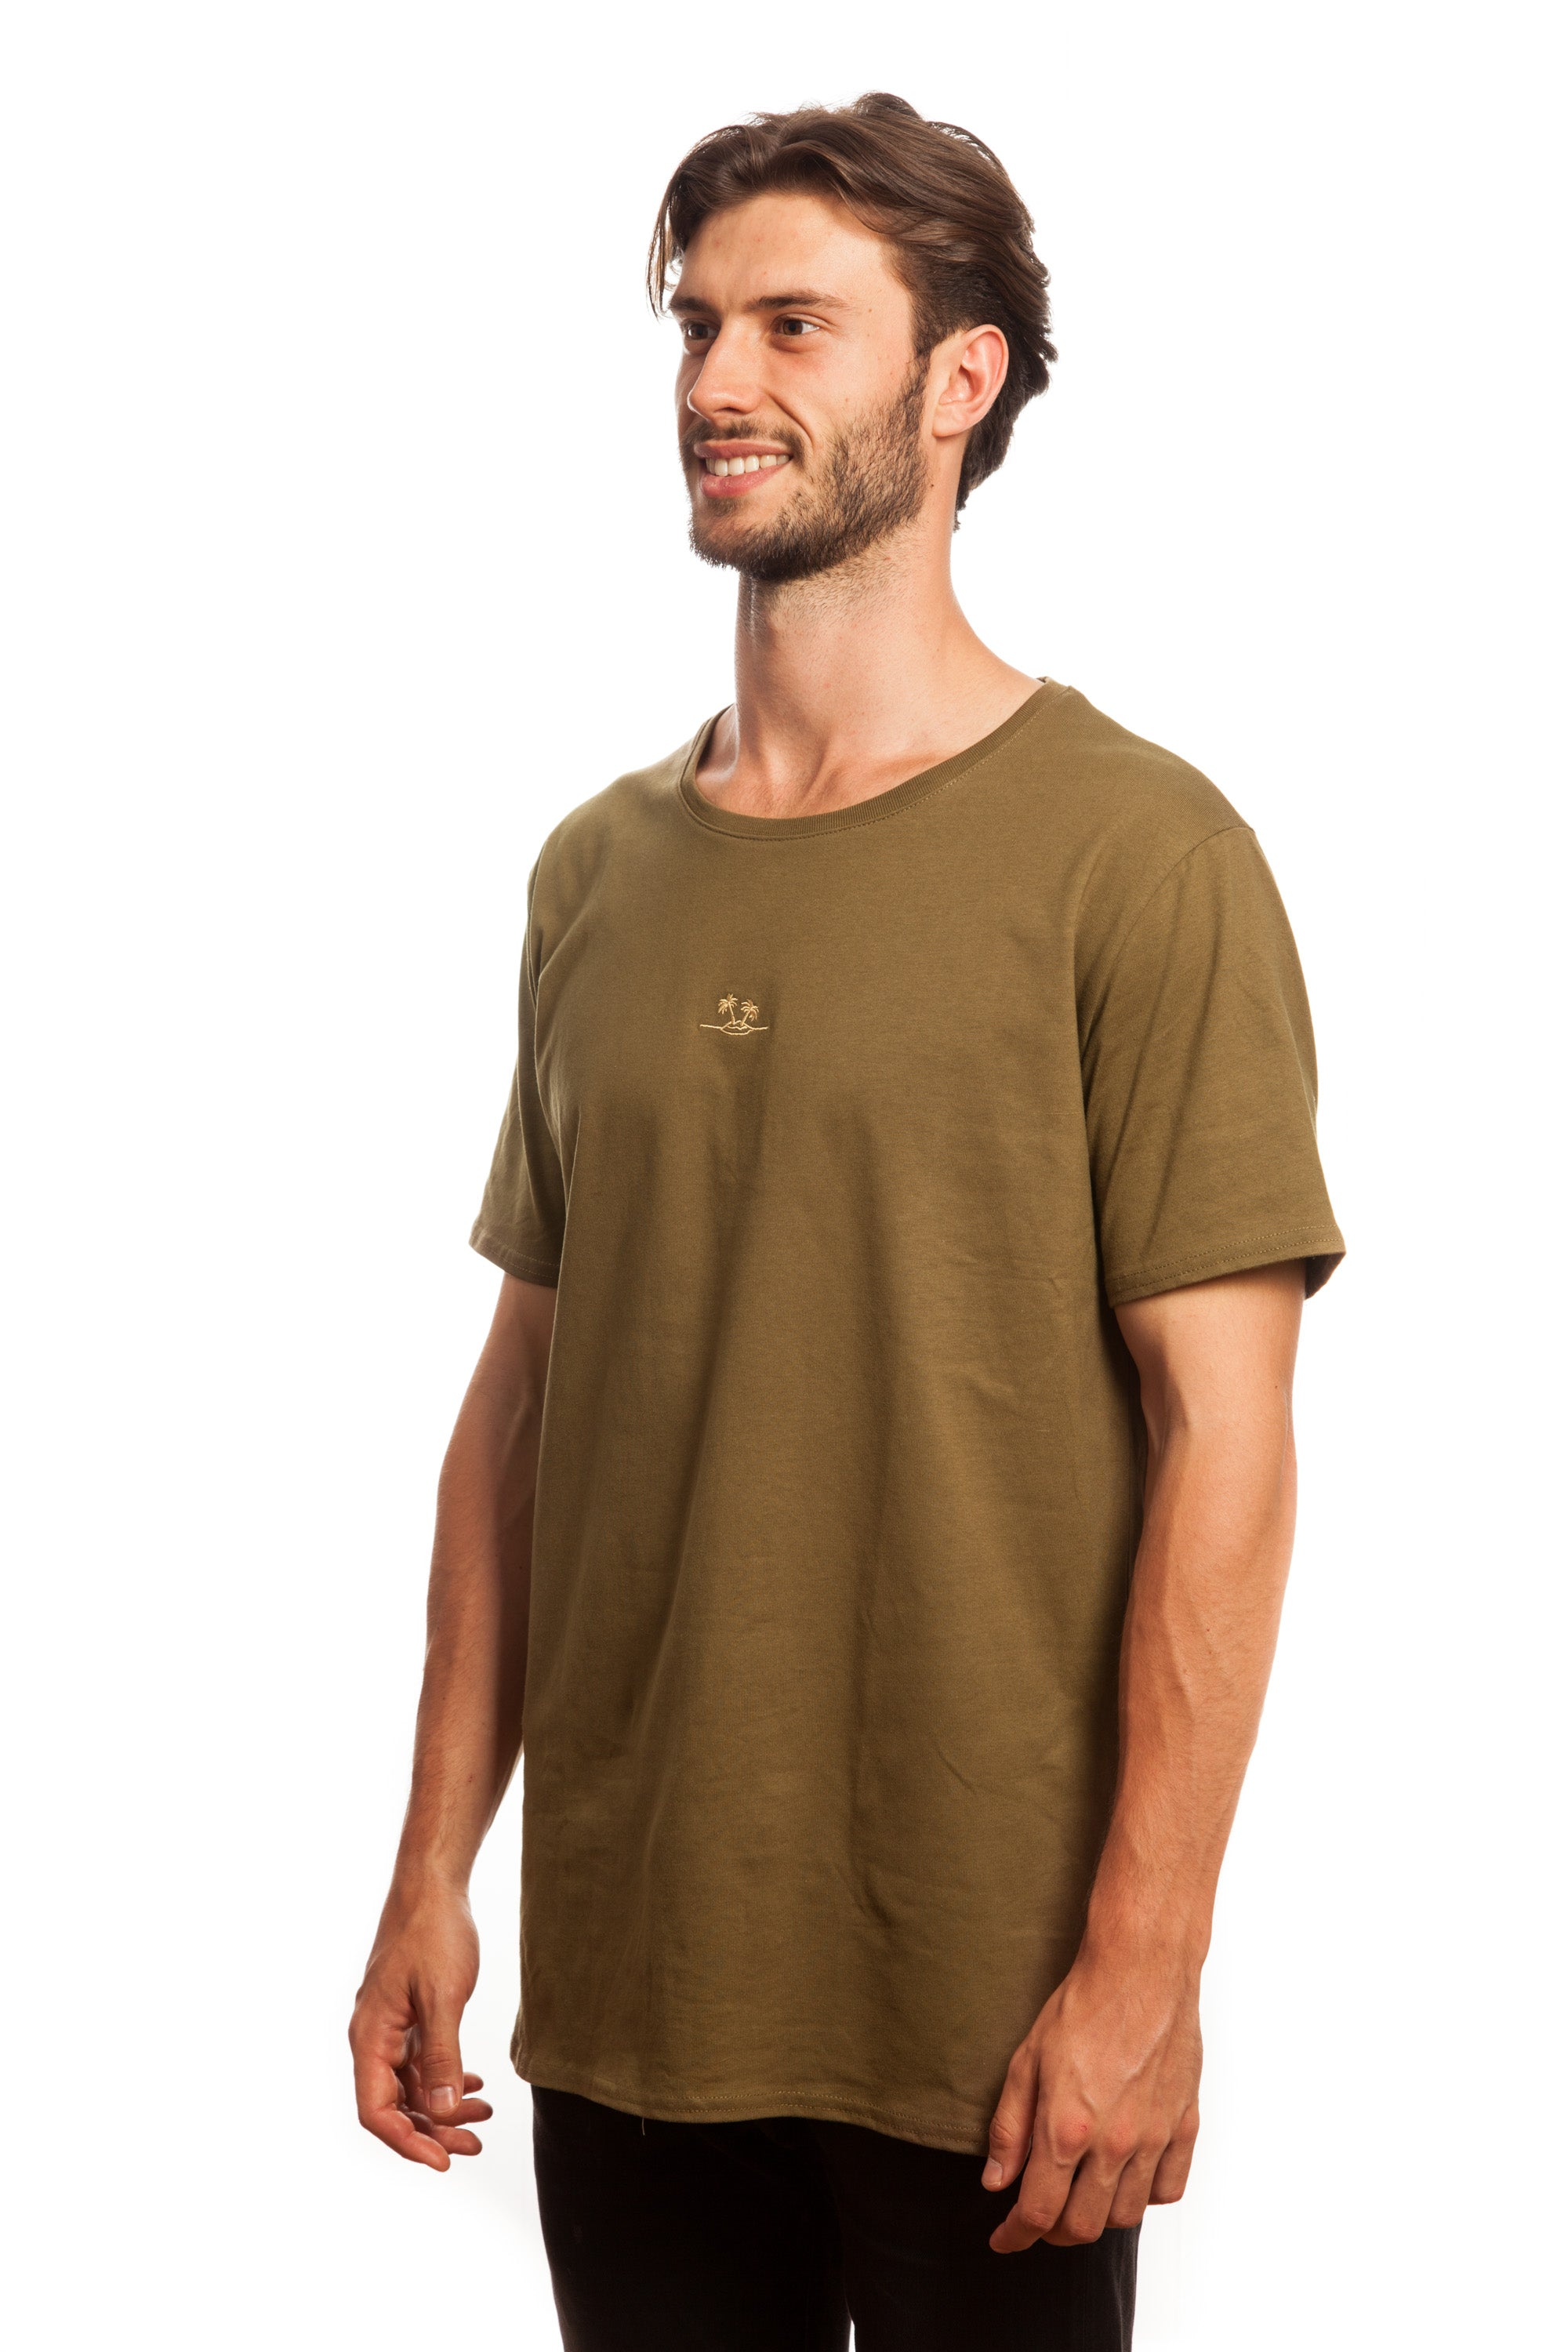 Khaki Embroidered Basic // Palm